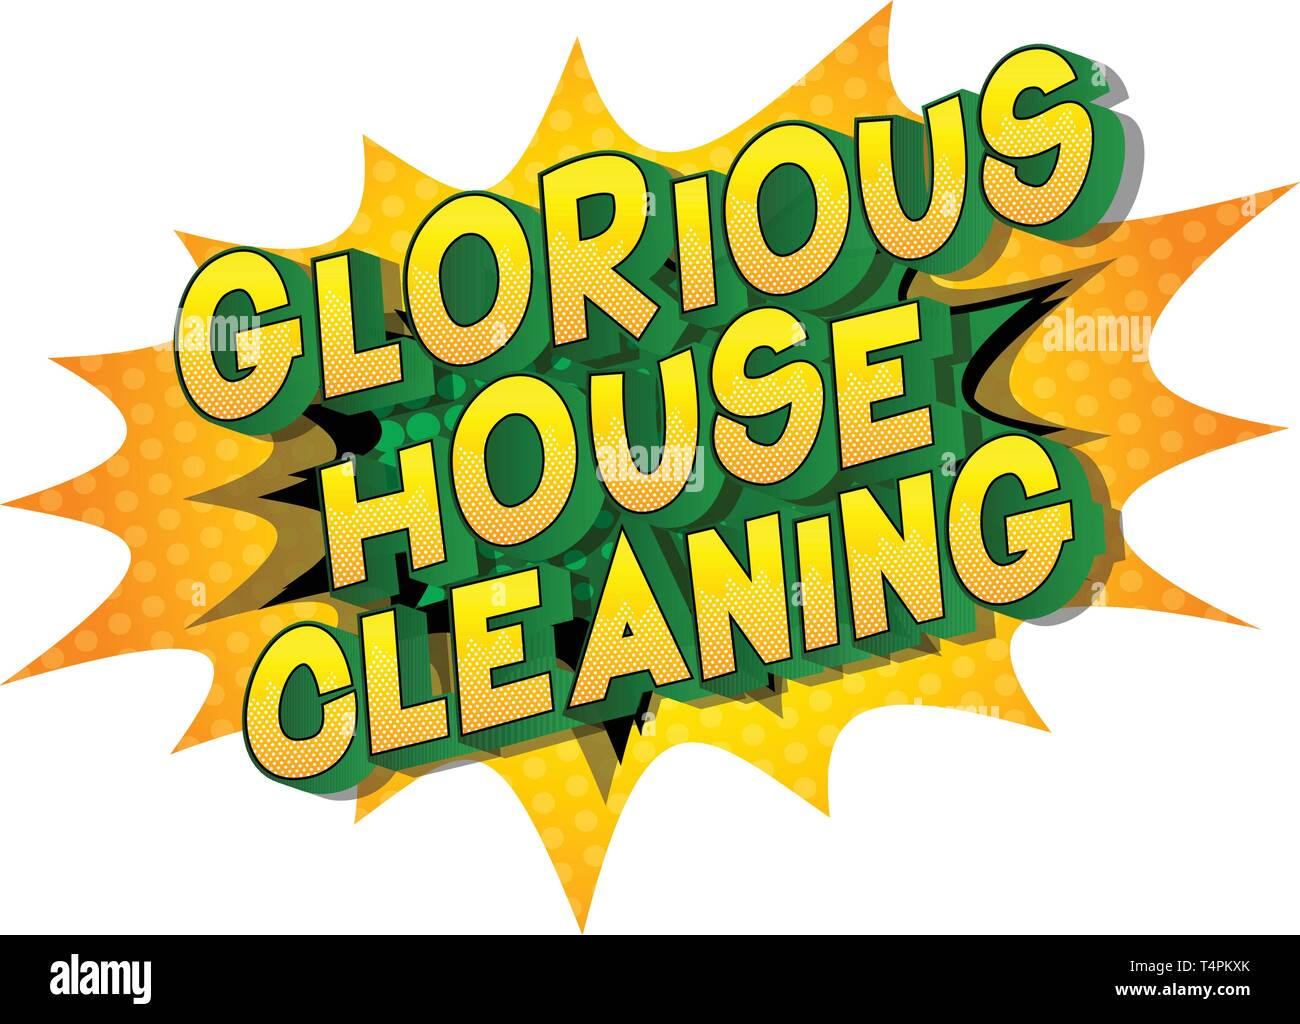 Glorious House Cleaning - Vector illustrated comic book style phrase on abstract background. - Stock Image